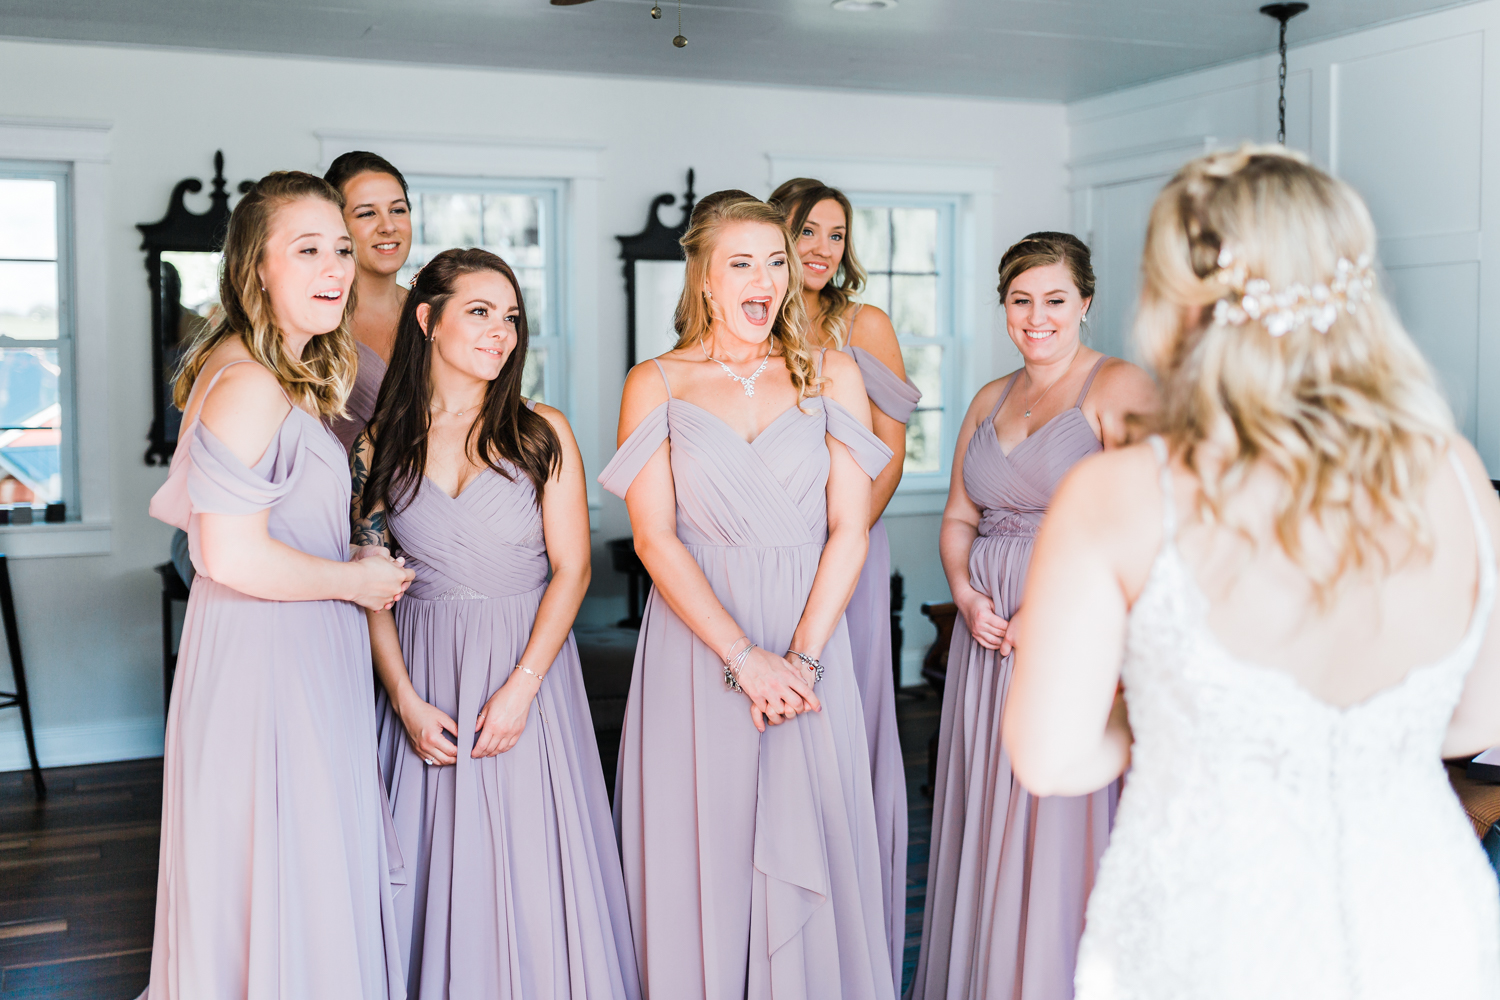 bridesmaids seeing their friend ready for the first time - bridesmaids reaction